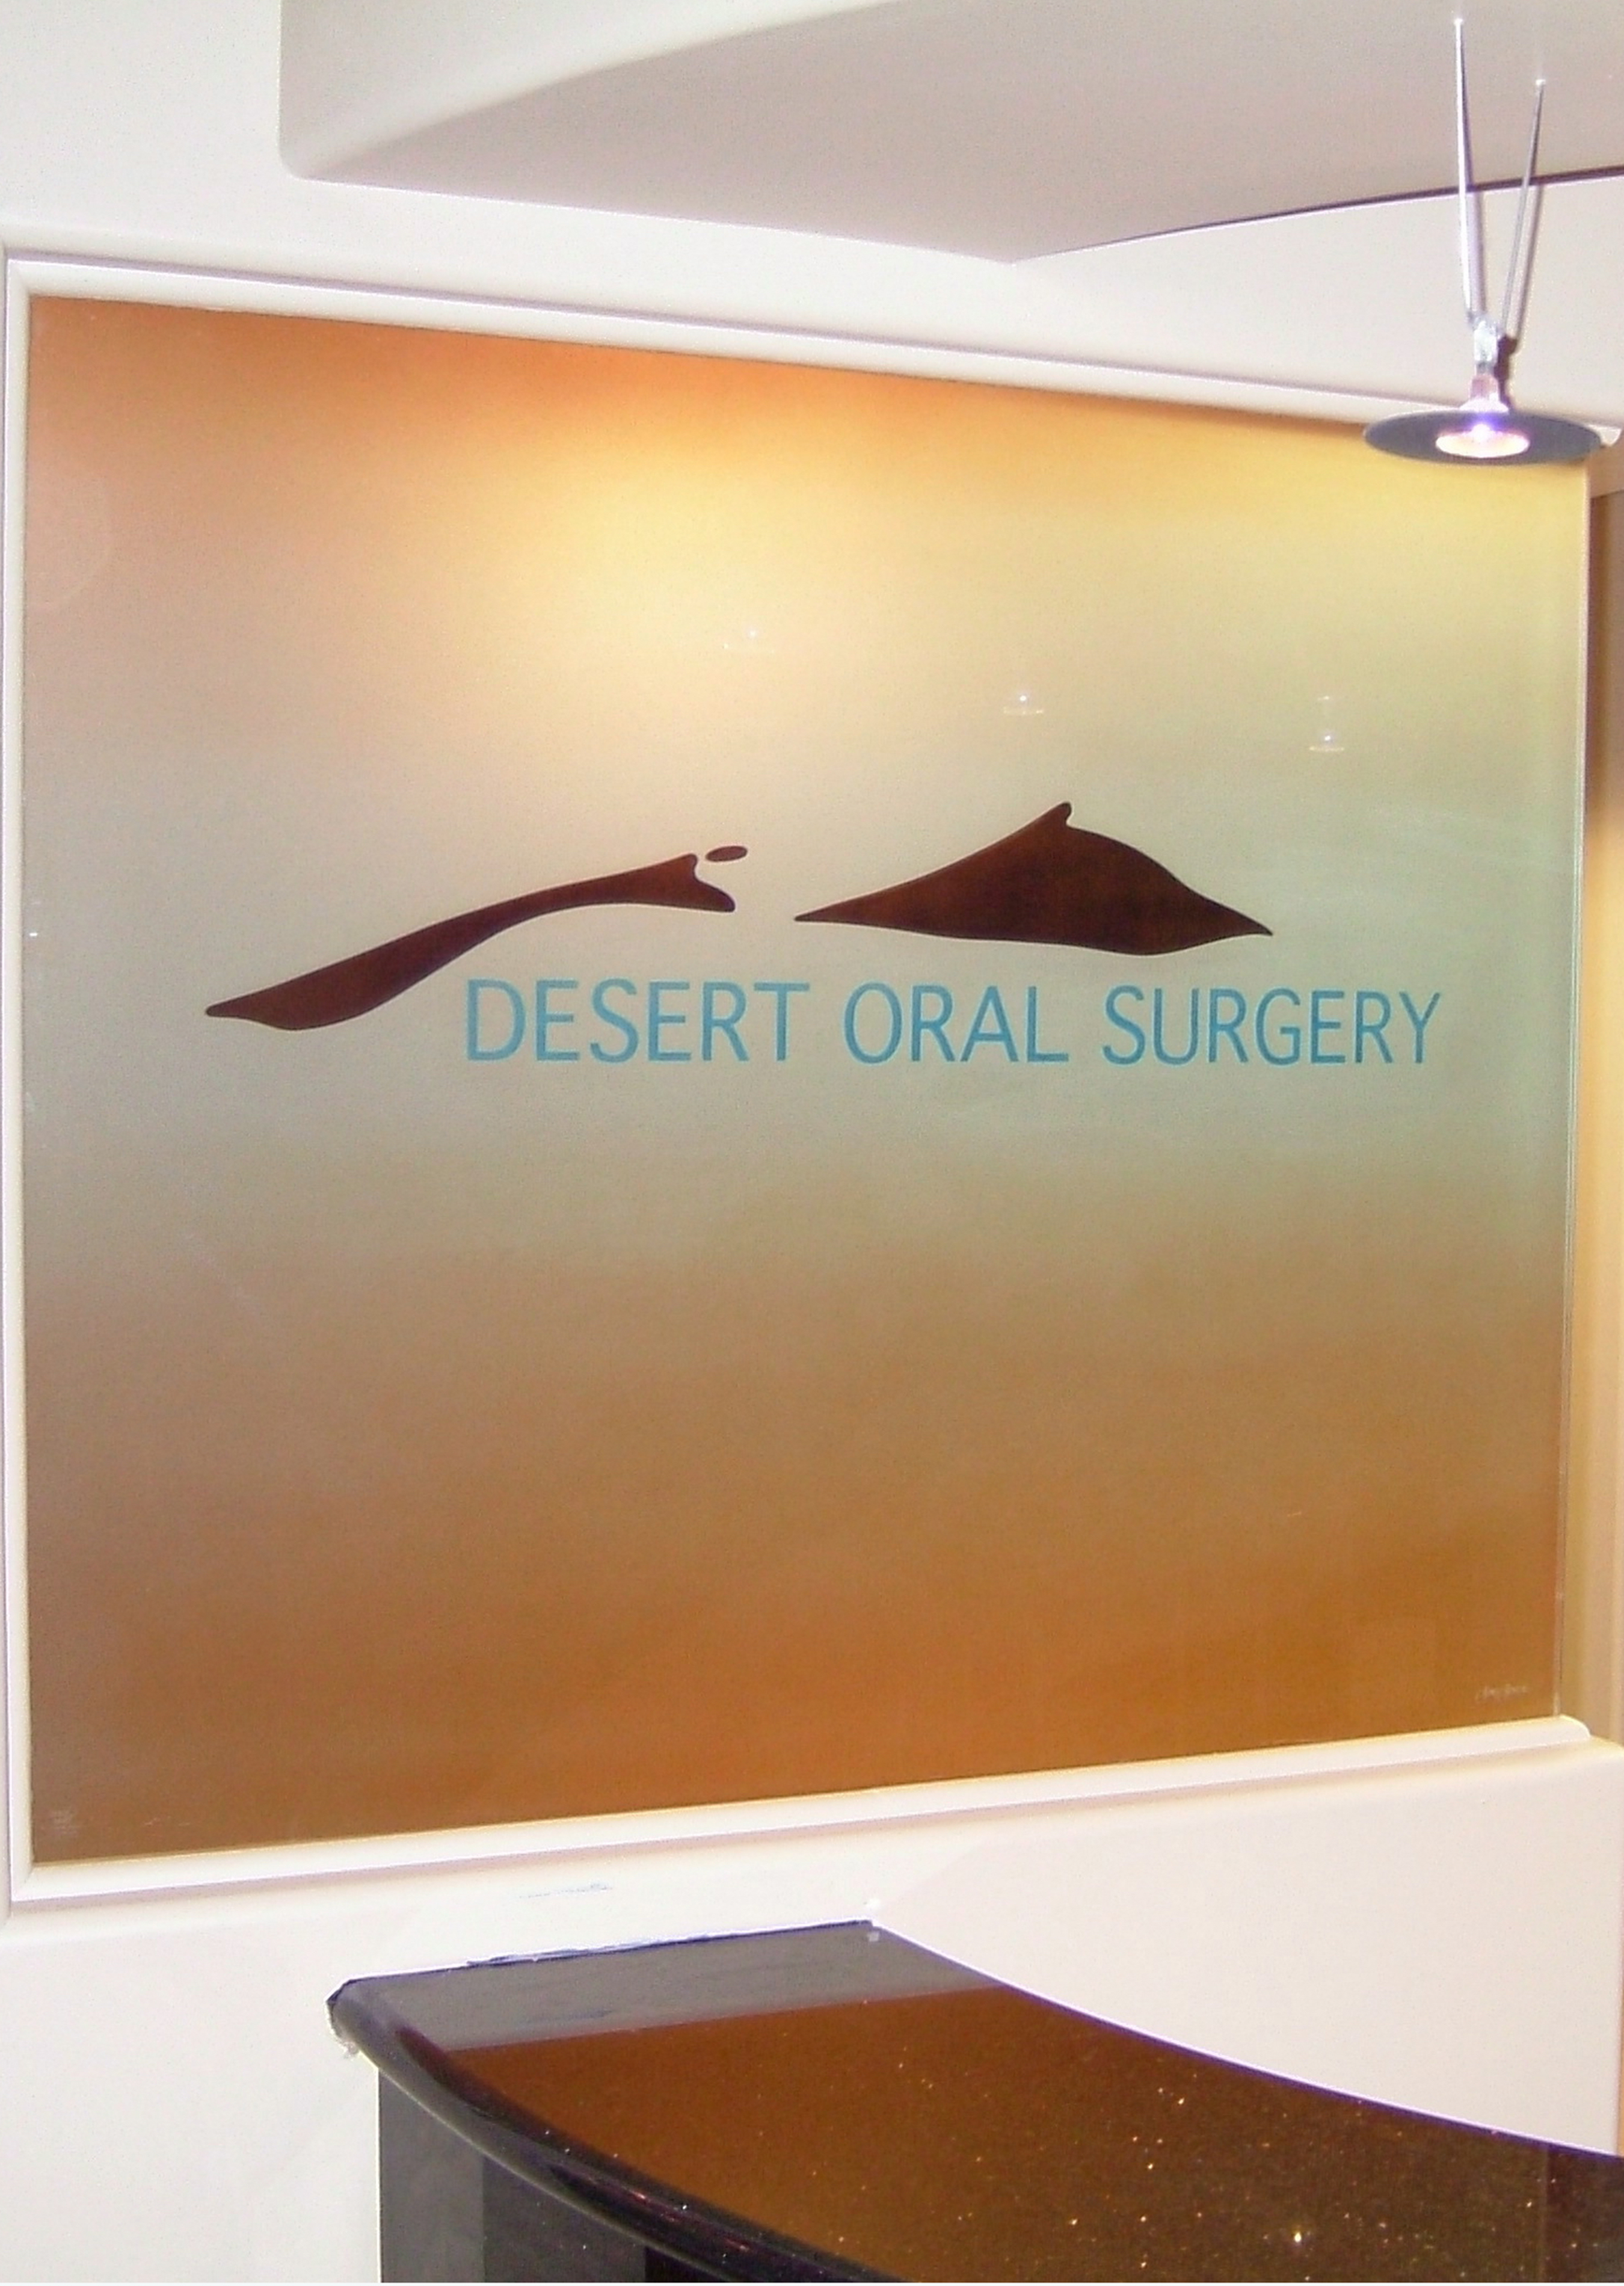 Desert Oral Surgery (similar look)